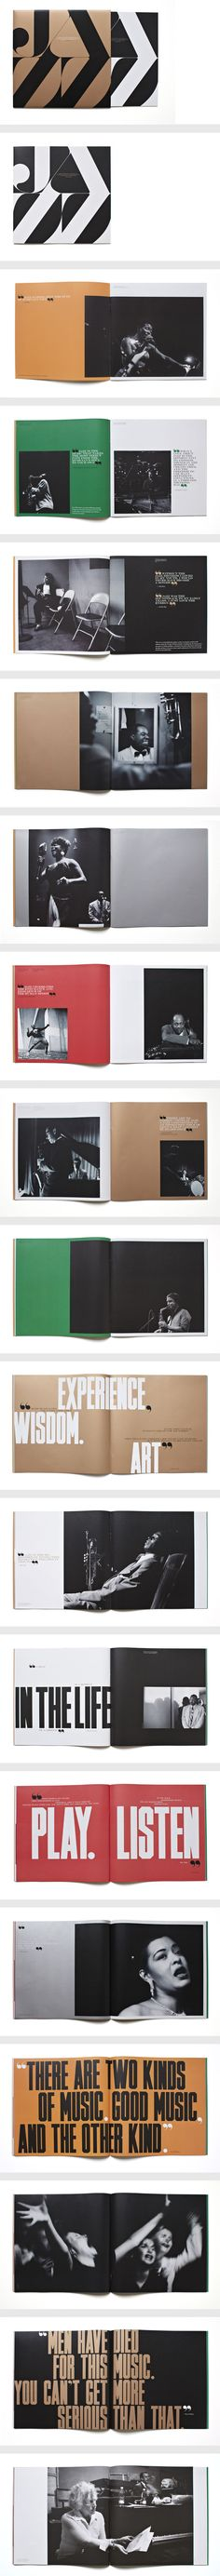 Type as dominant graphic element  Jazz FM Booklet by Matt Willey